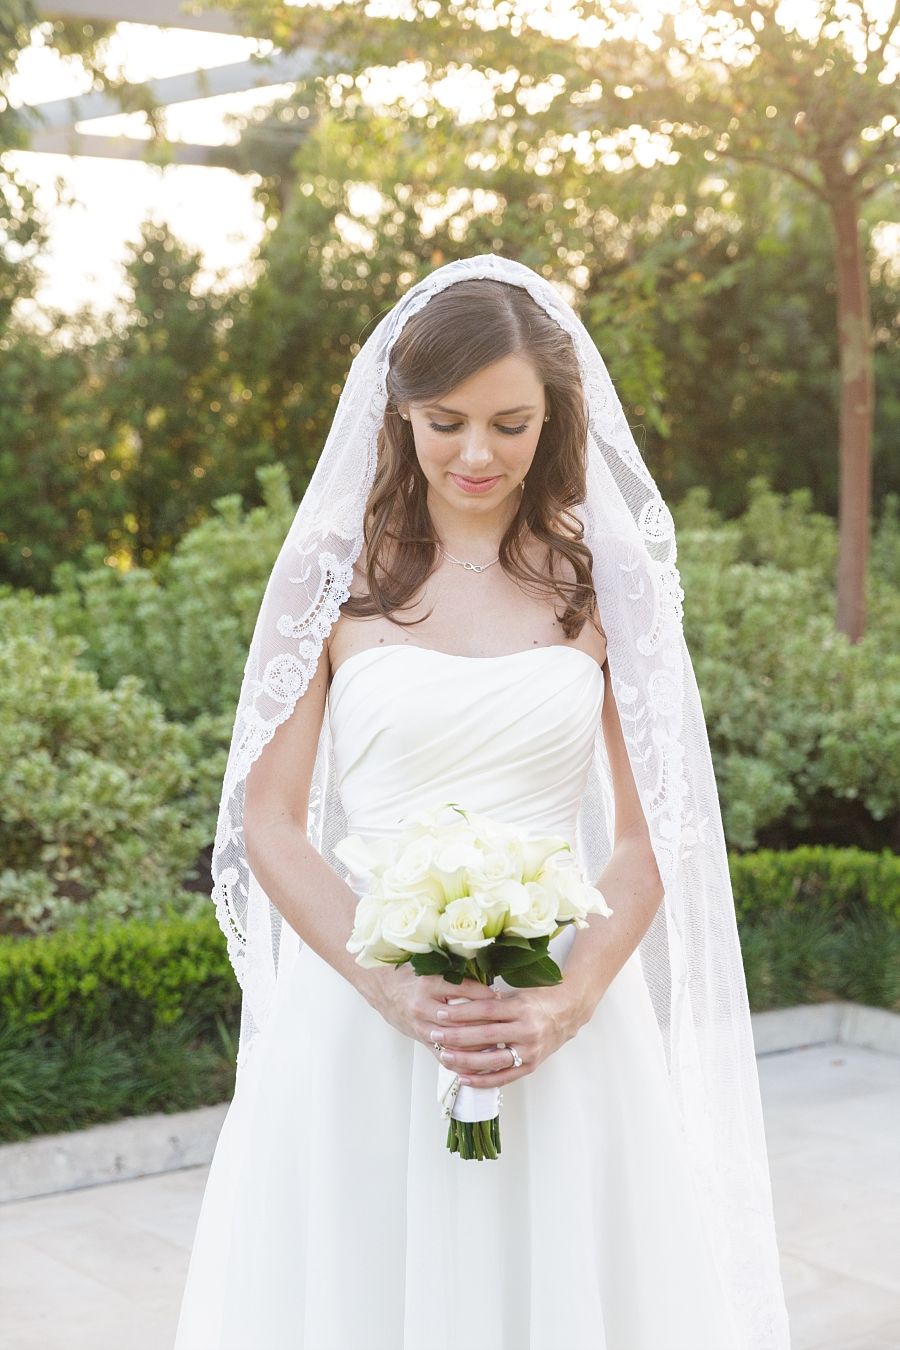 Stacy-Anderson-Photography-McGovern-Centennial-Gardens-Houston-Wedding-Photographer_0051.jpg